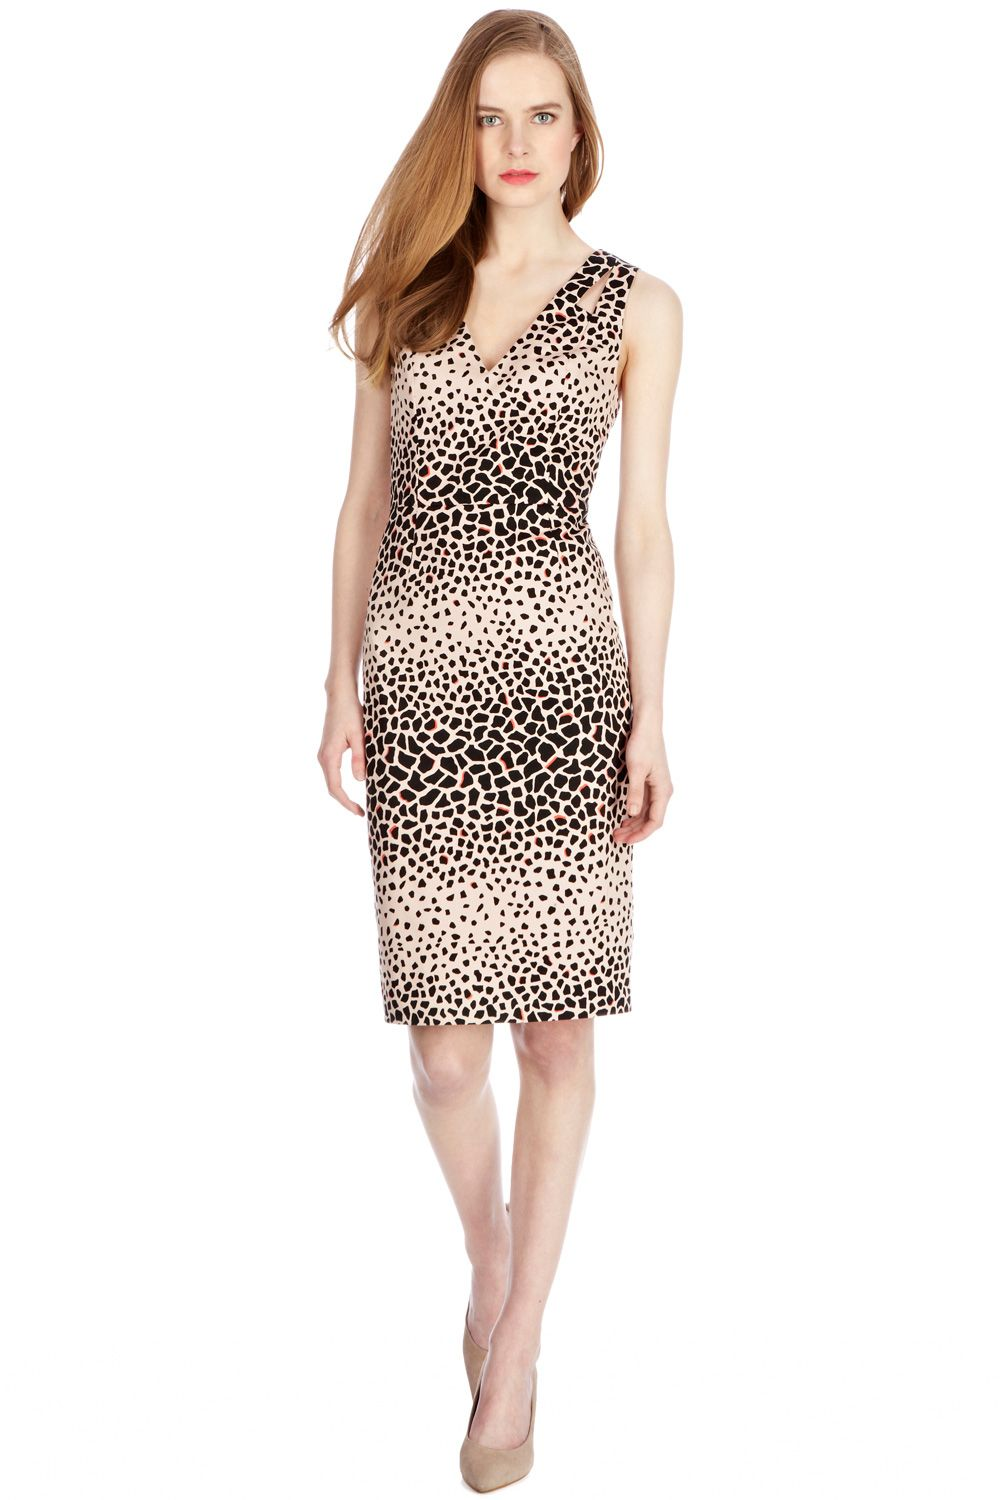 Animal print pencil dress